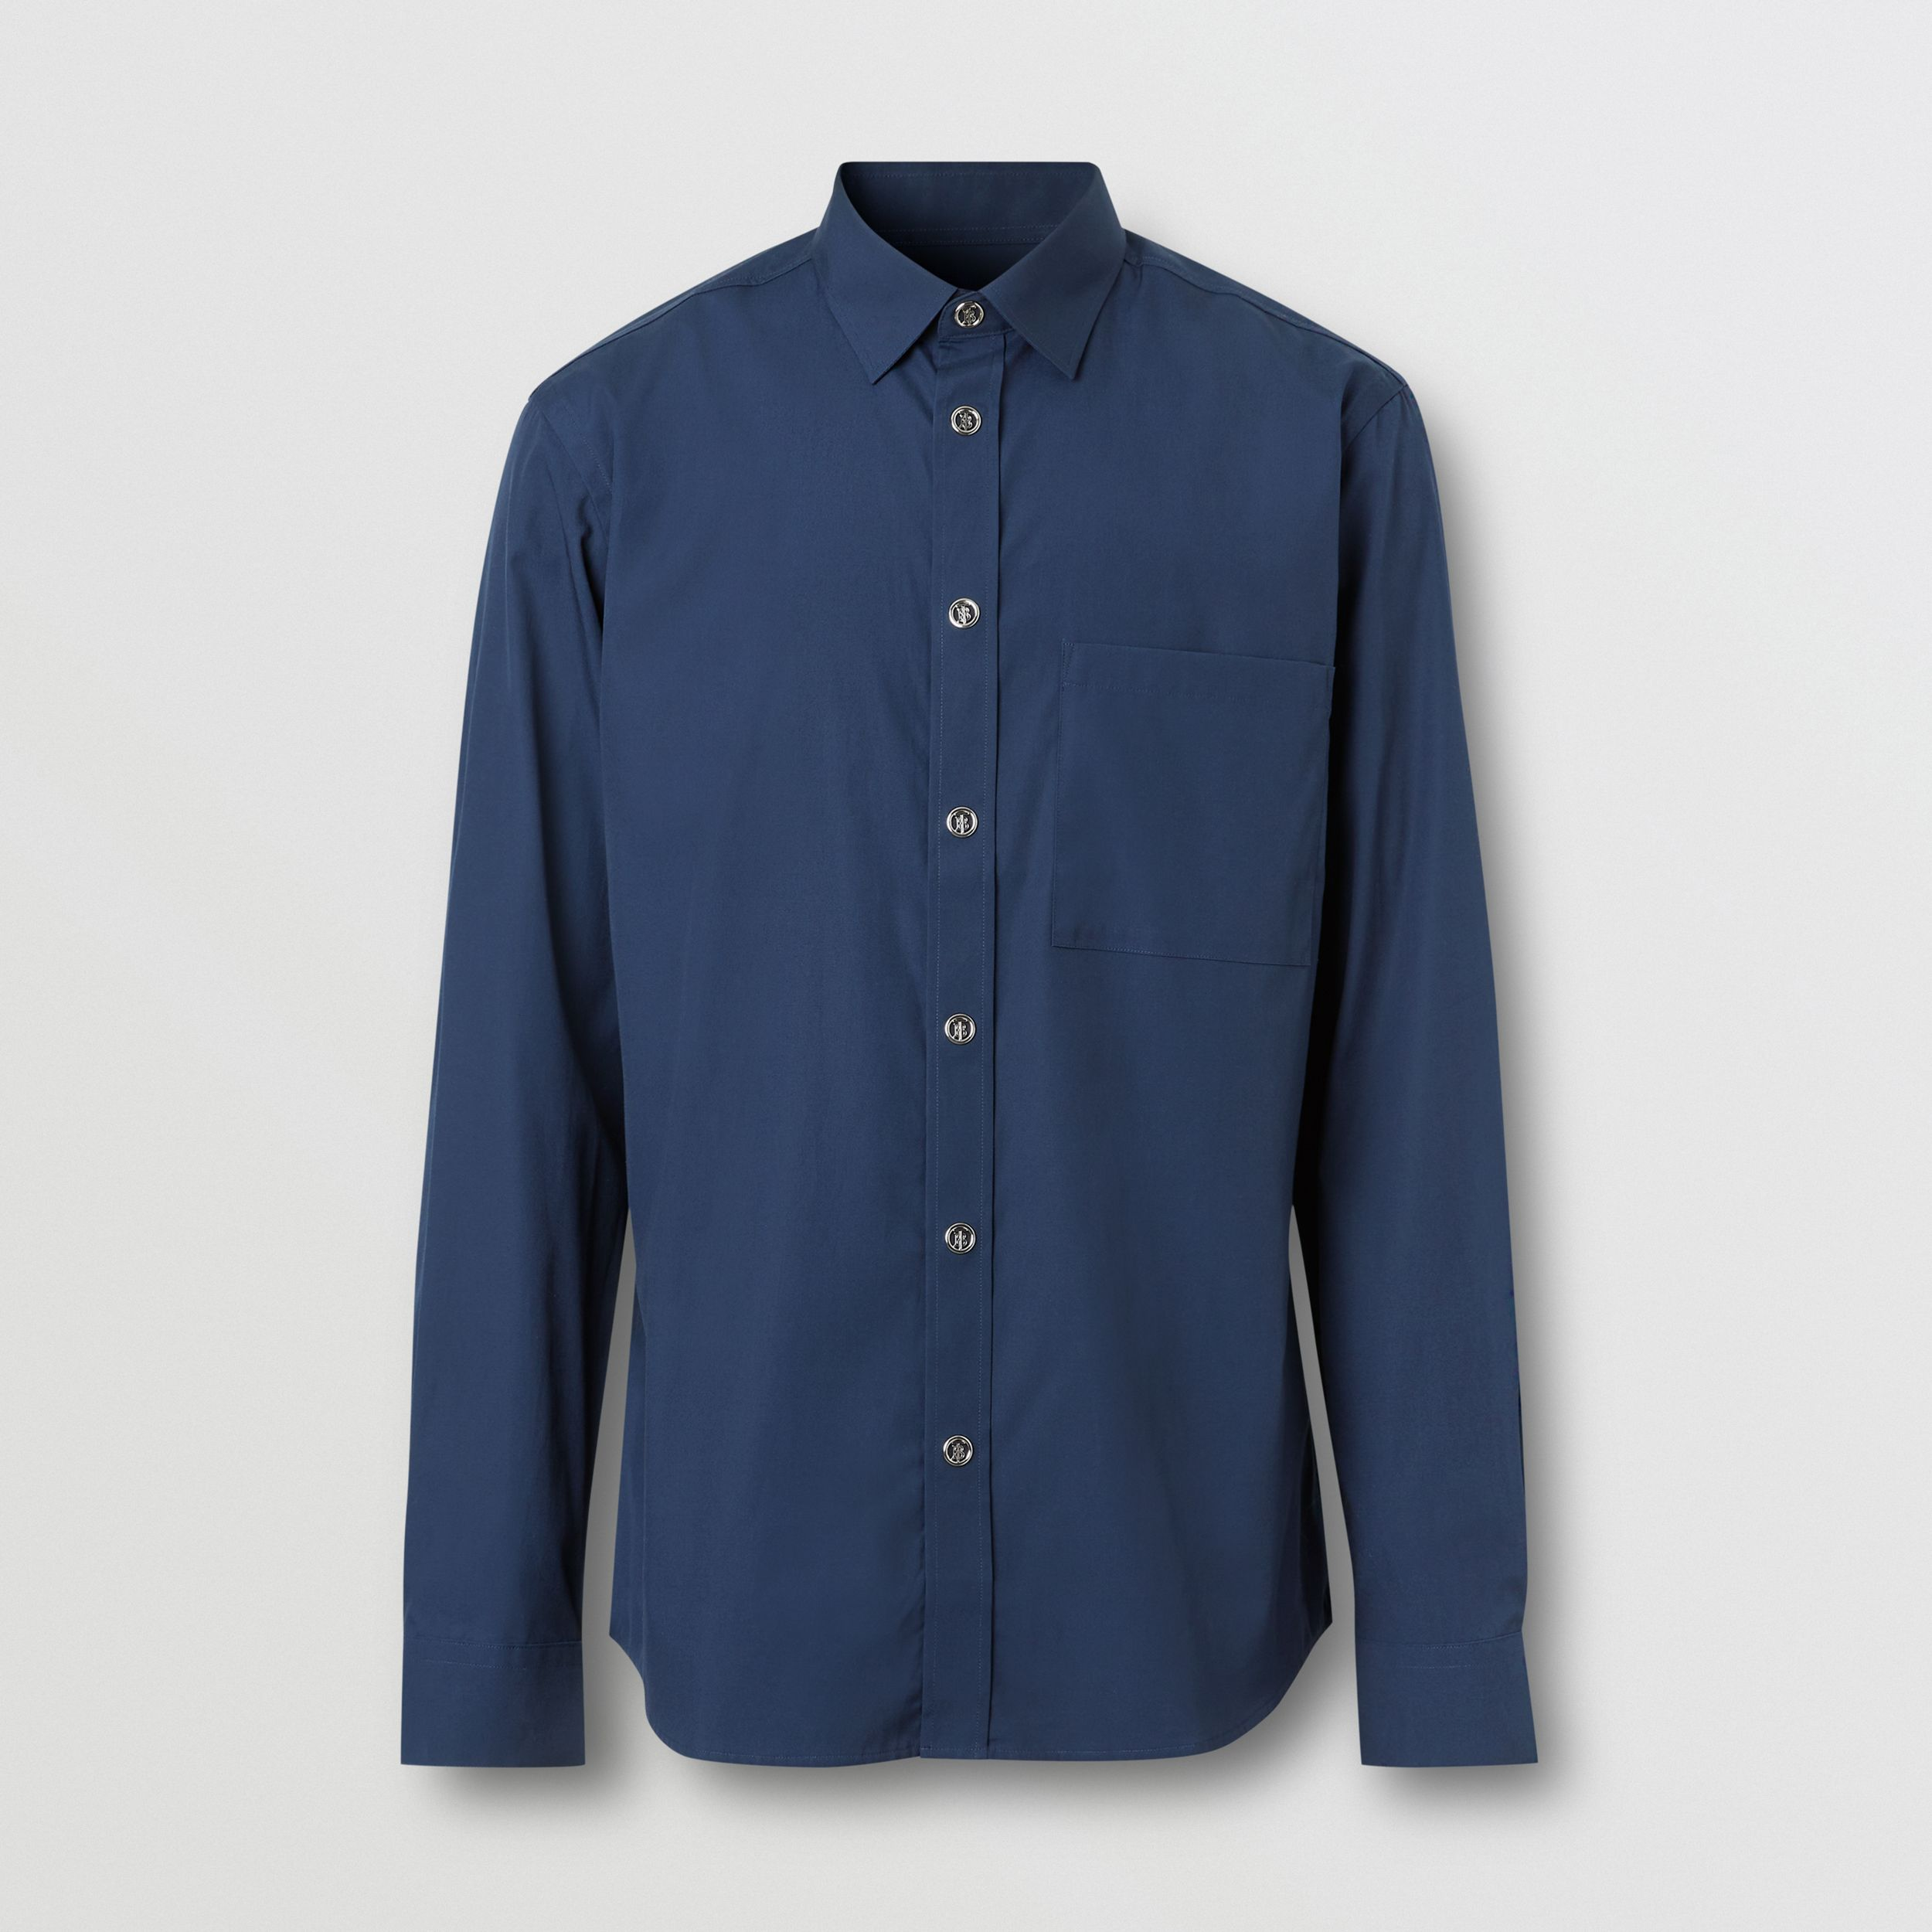 Monogram Motif Stretch Cotton Shirt in Navy - Men | Burberry Australia - 4